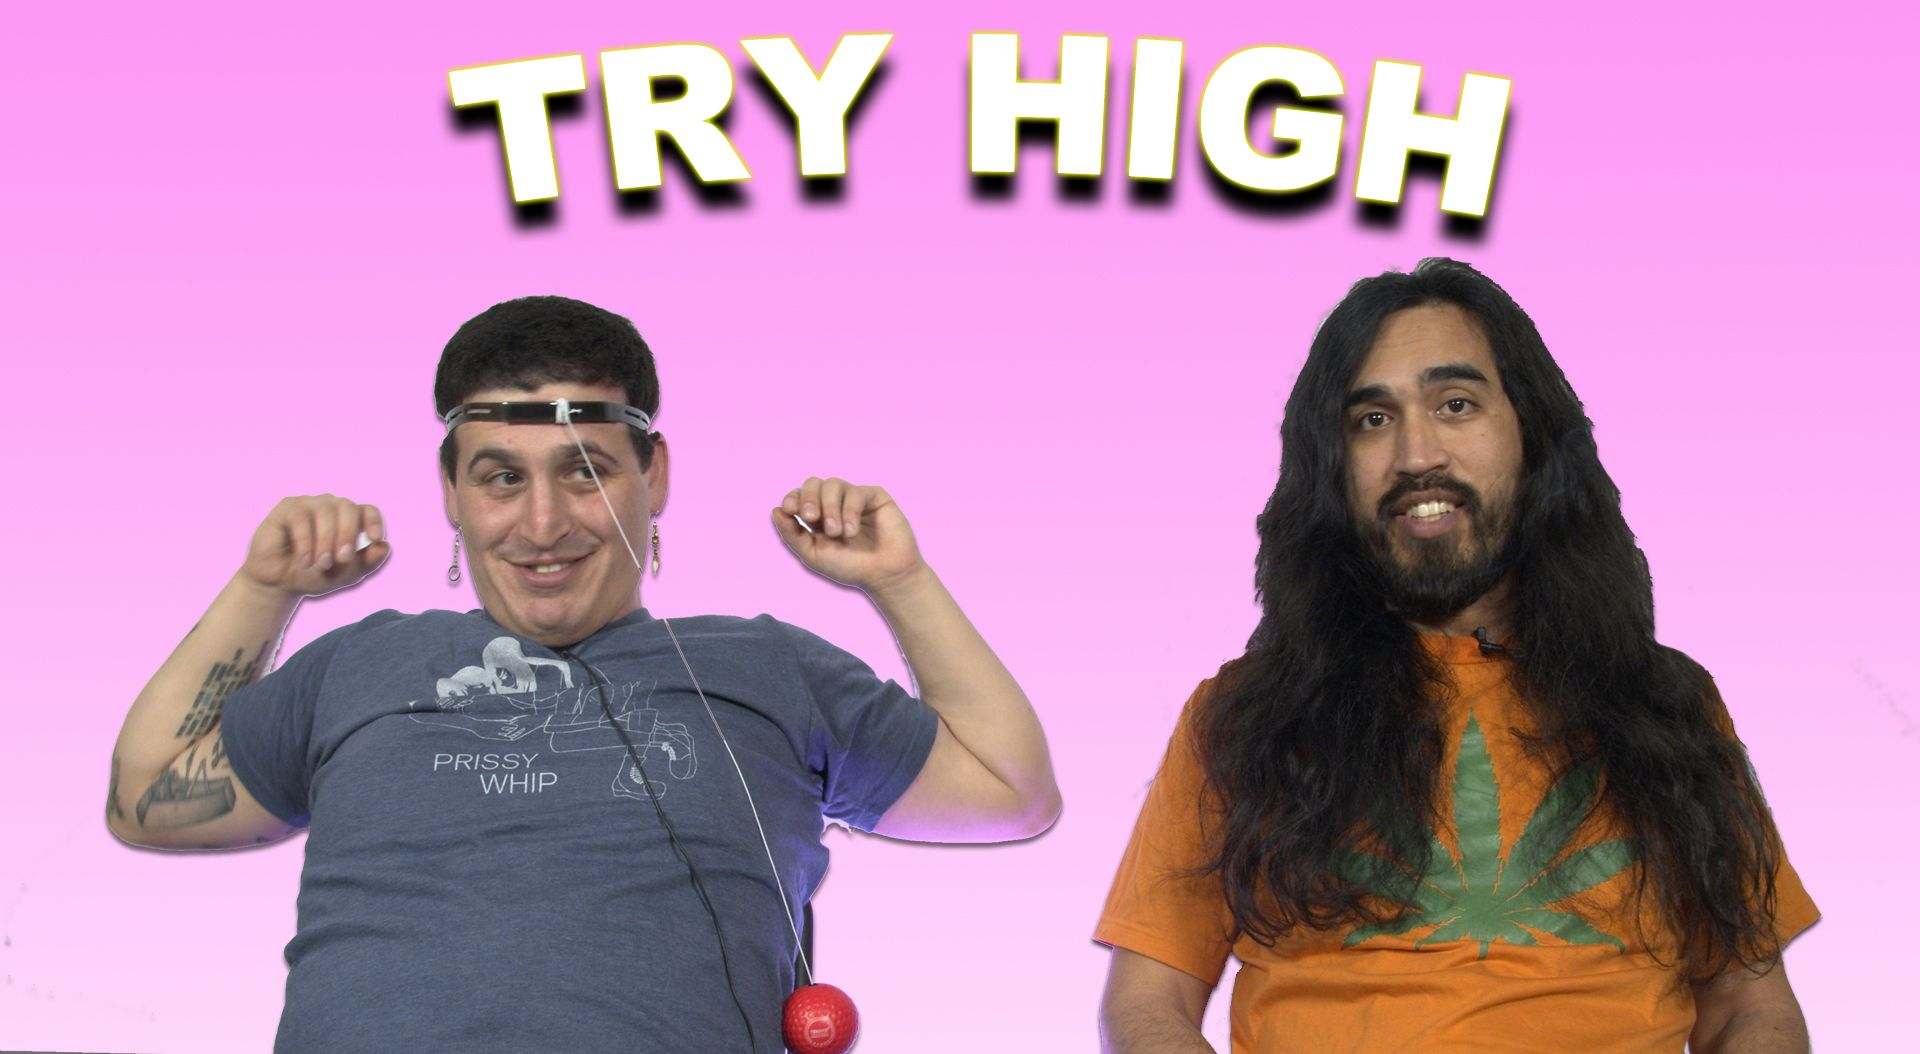 Makal and Dalton Get Lit and Test Their Boxing Skills | TRY HIGH